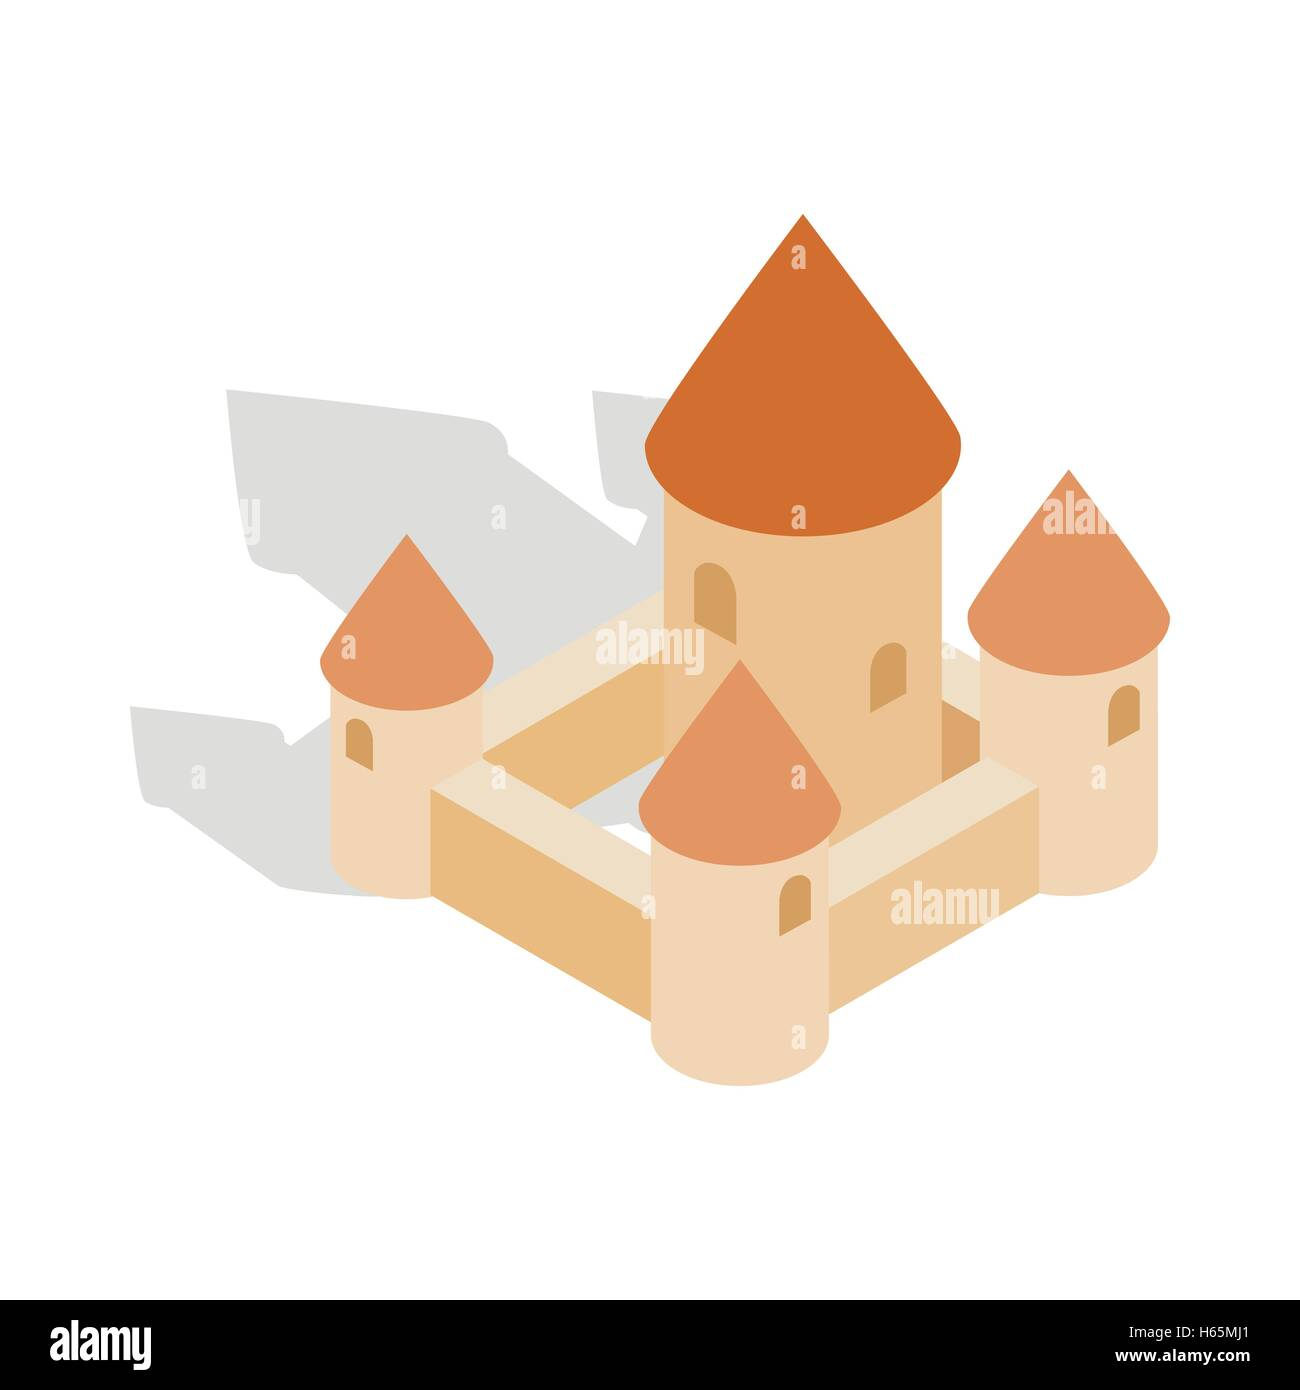 Chillon castle in Montreux city, Switzerland icon - Stock Vector